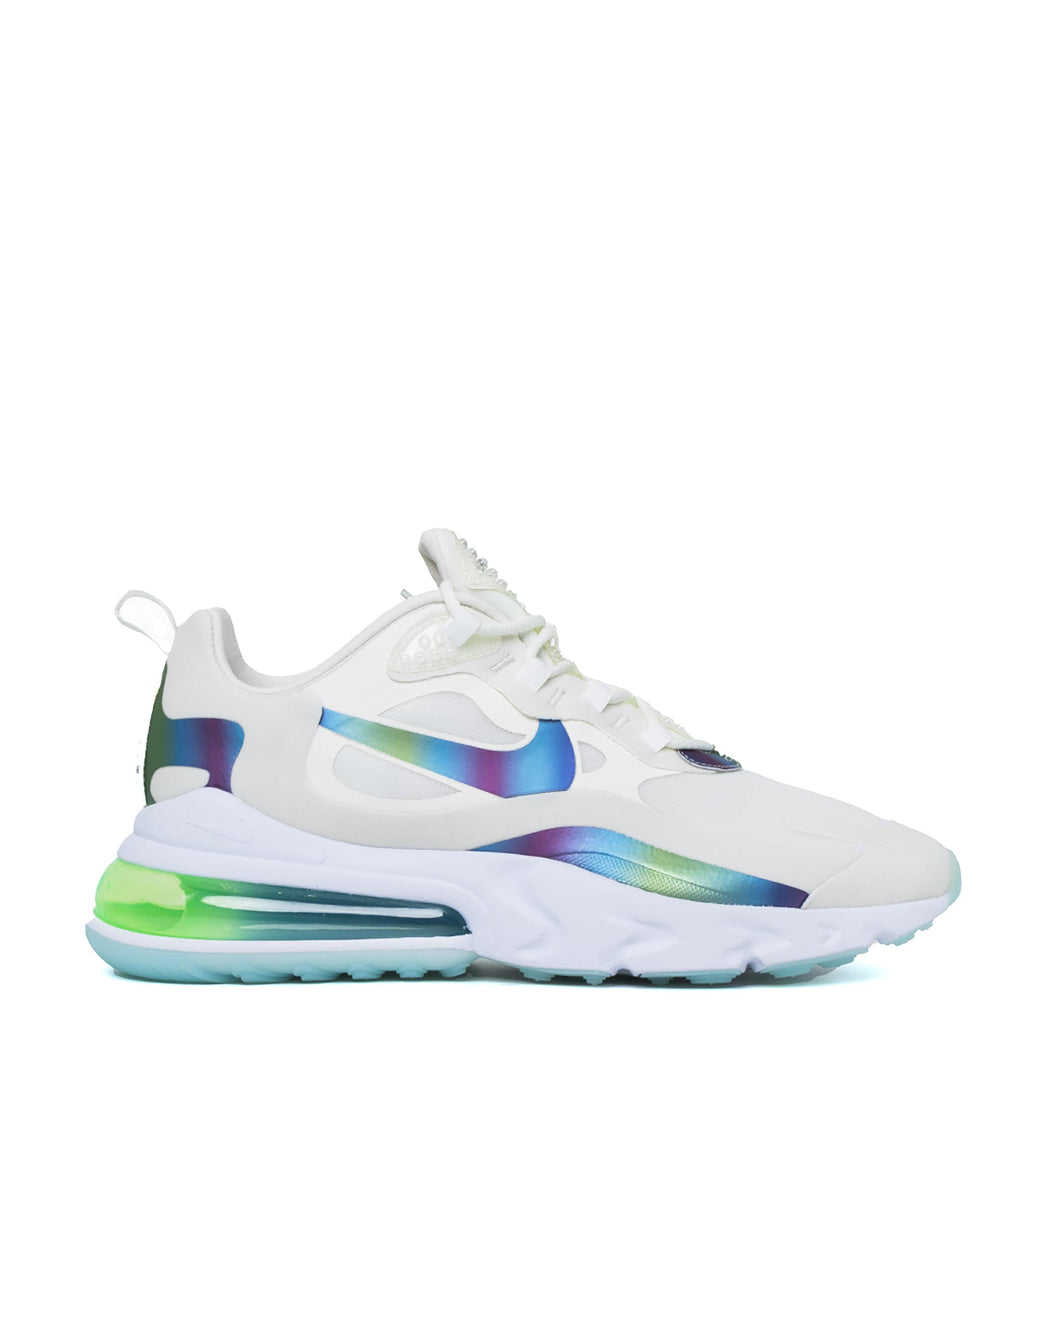 Nike Air Max 270 React 20 Summit White/Multicolor